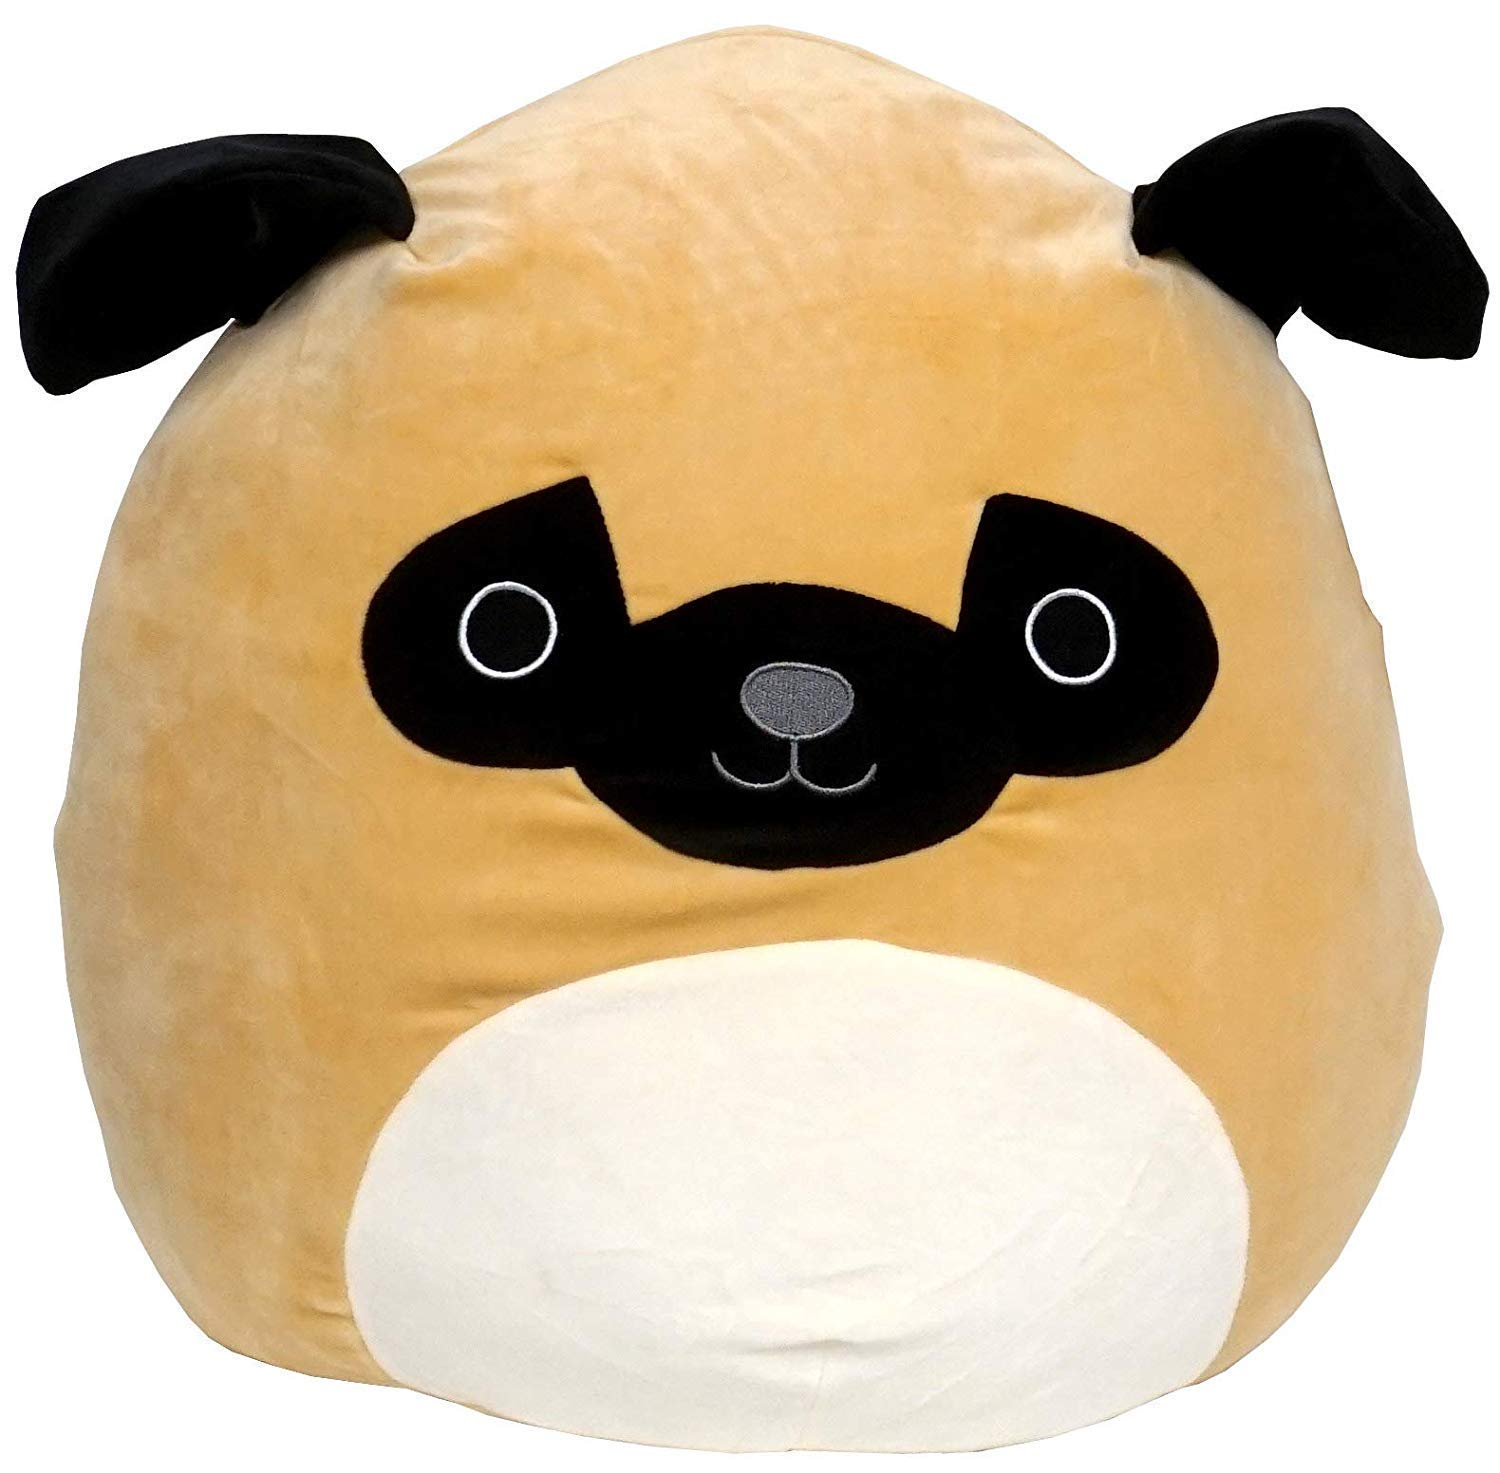 Kellytoy Squishmallow Prince The Pug Super Soft Plush Toy Pillow Pet Pal Buddy (16 inches)